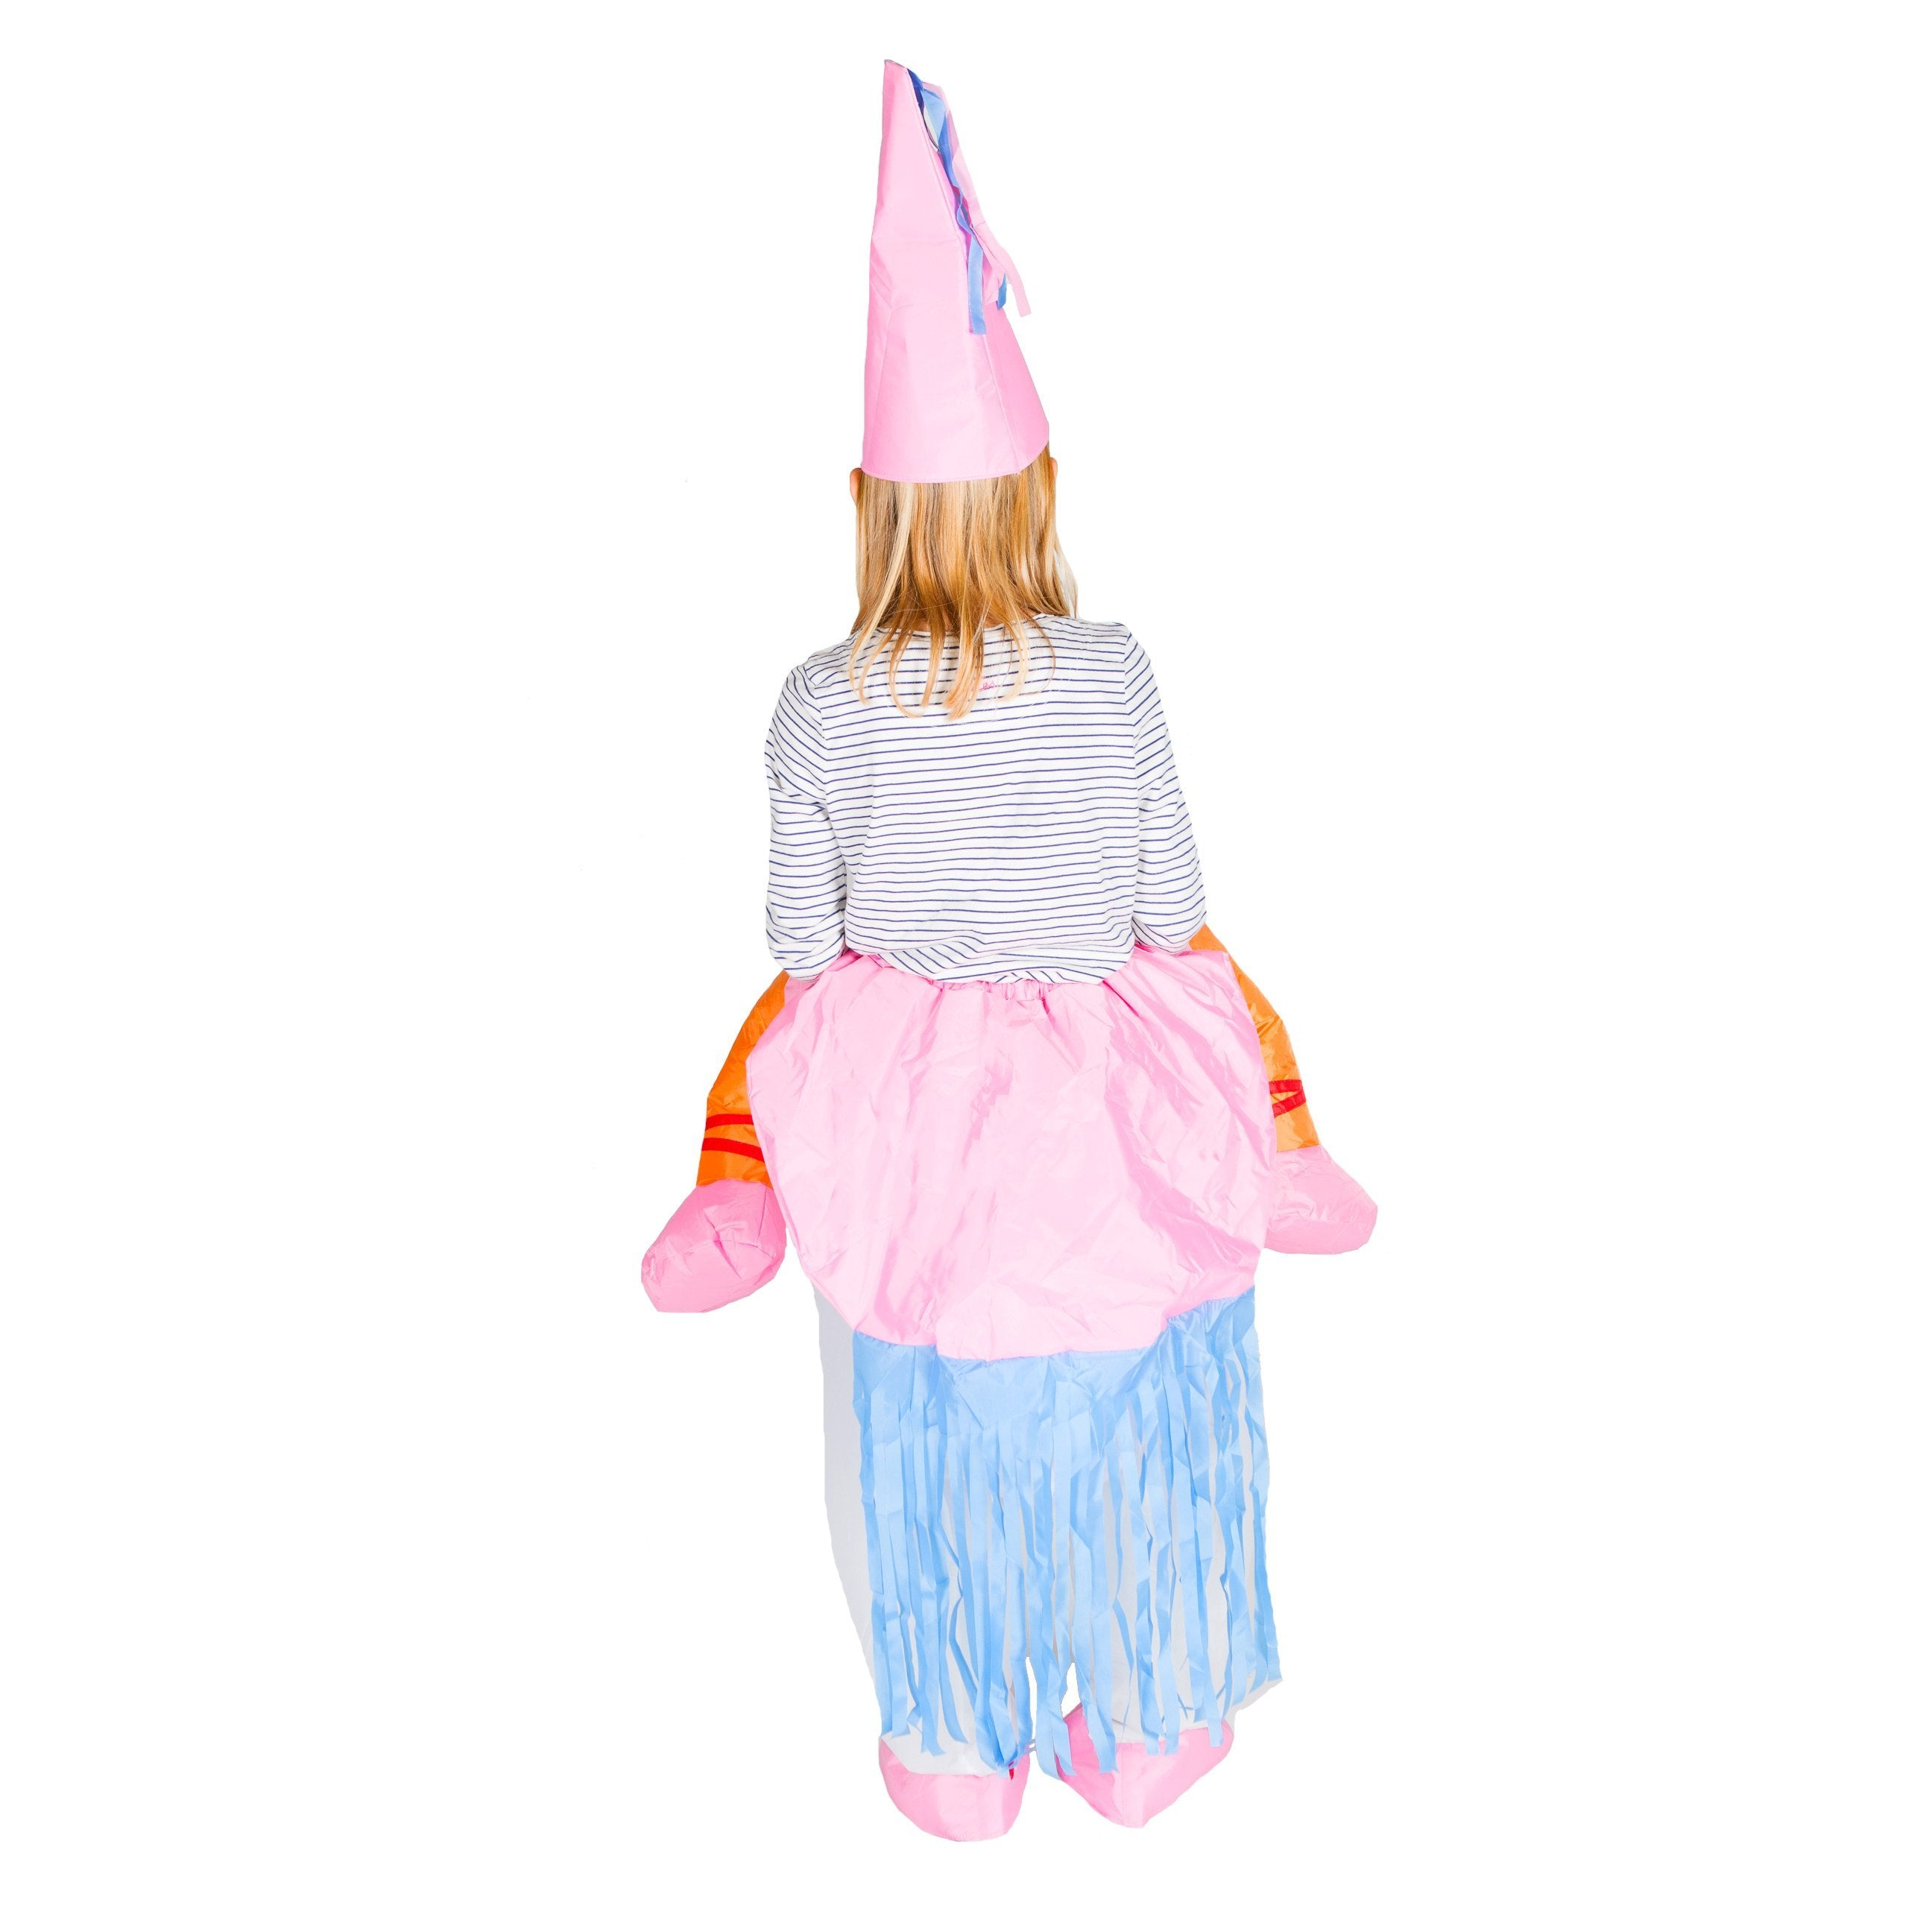 Bodysocks - Kids Inflatable Unicorn Costume